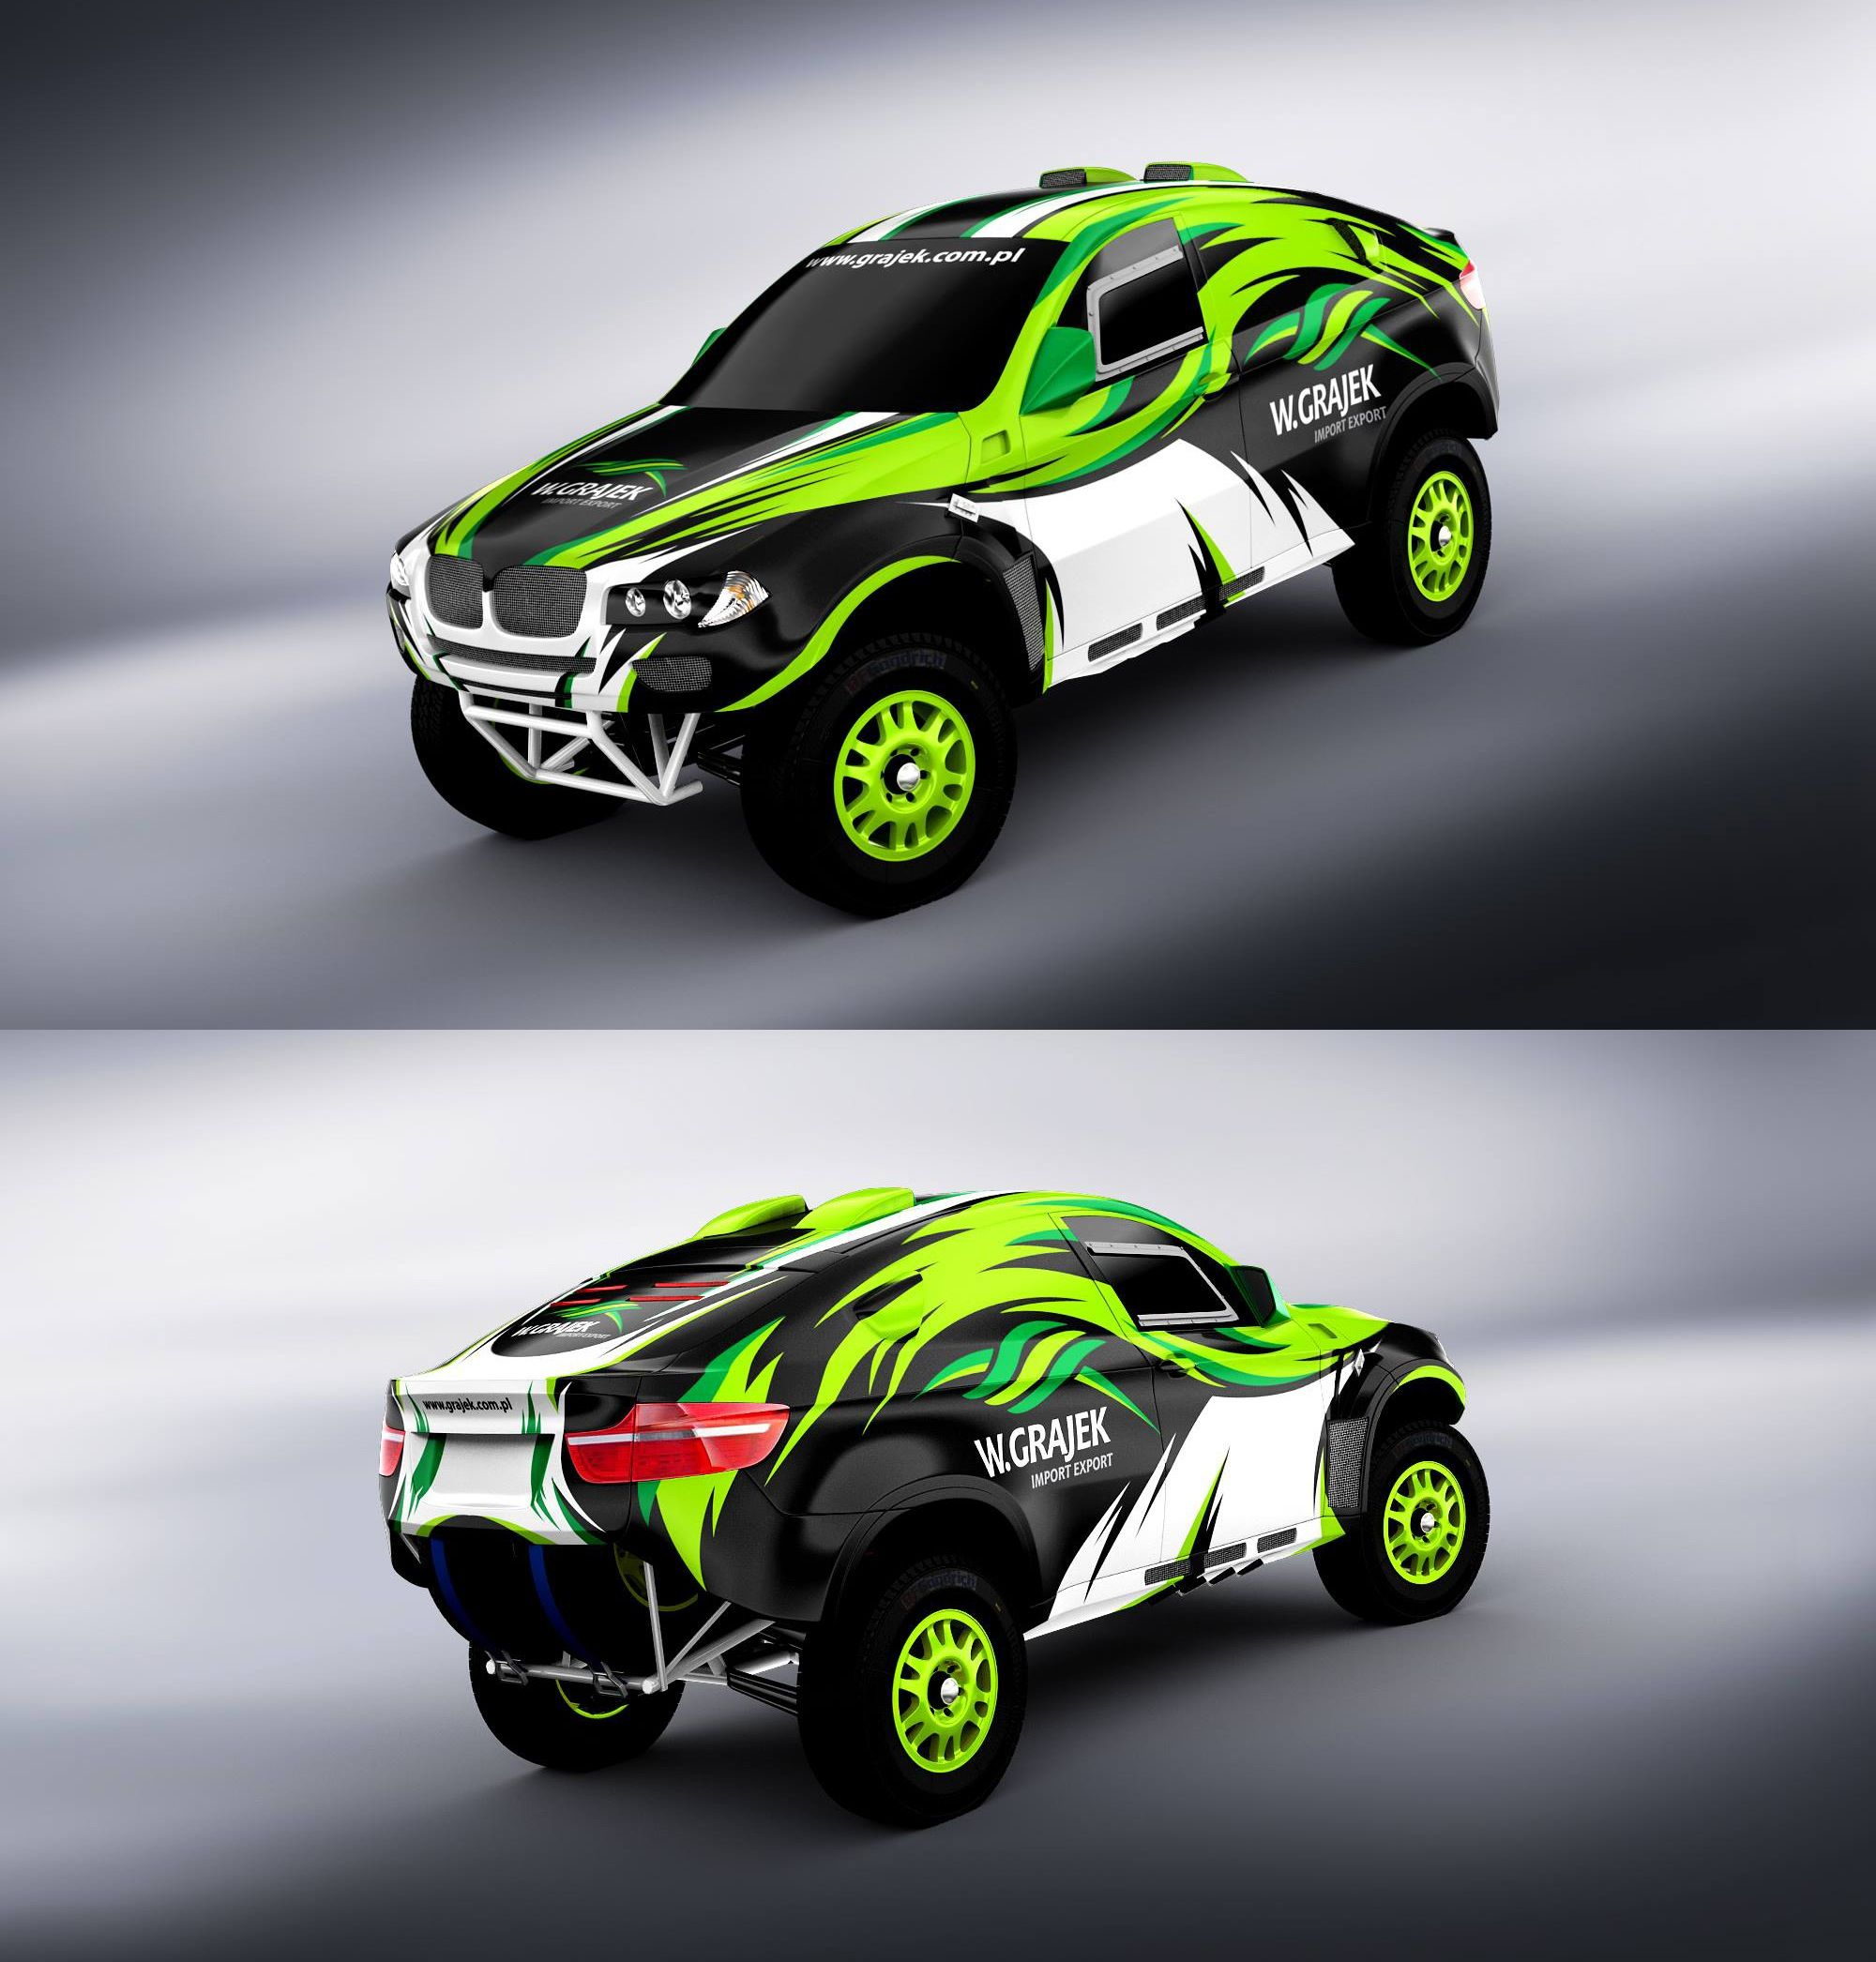 Bmw X6 Racing Livery We Collect And Generate Ideas Ufx Dk Racing